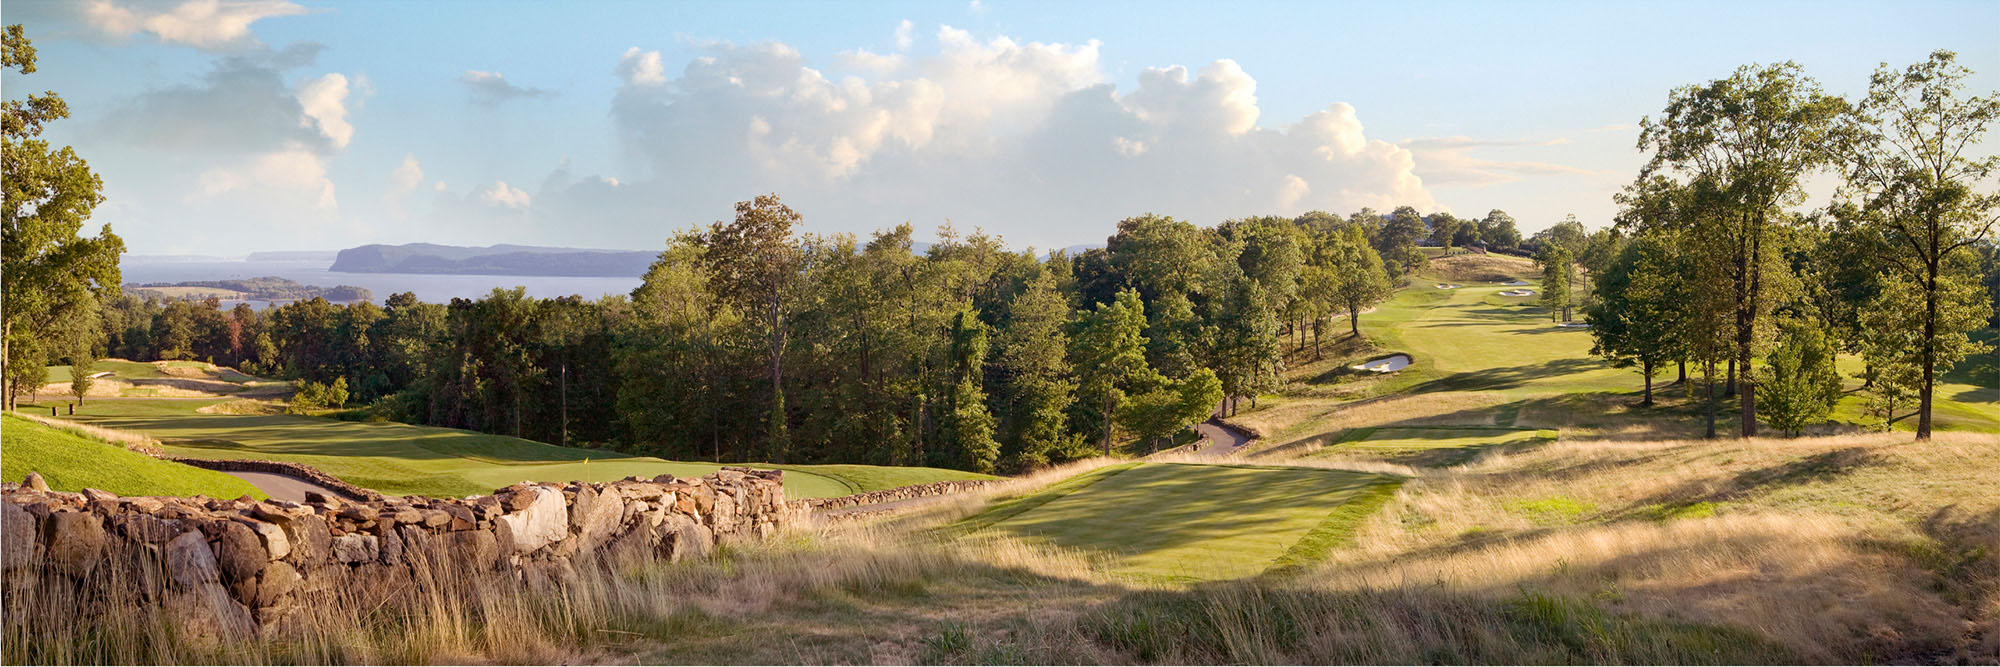 Golf Course Image - Hudson National No. 18